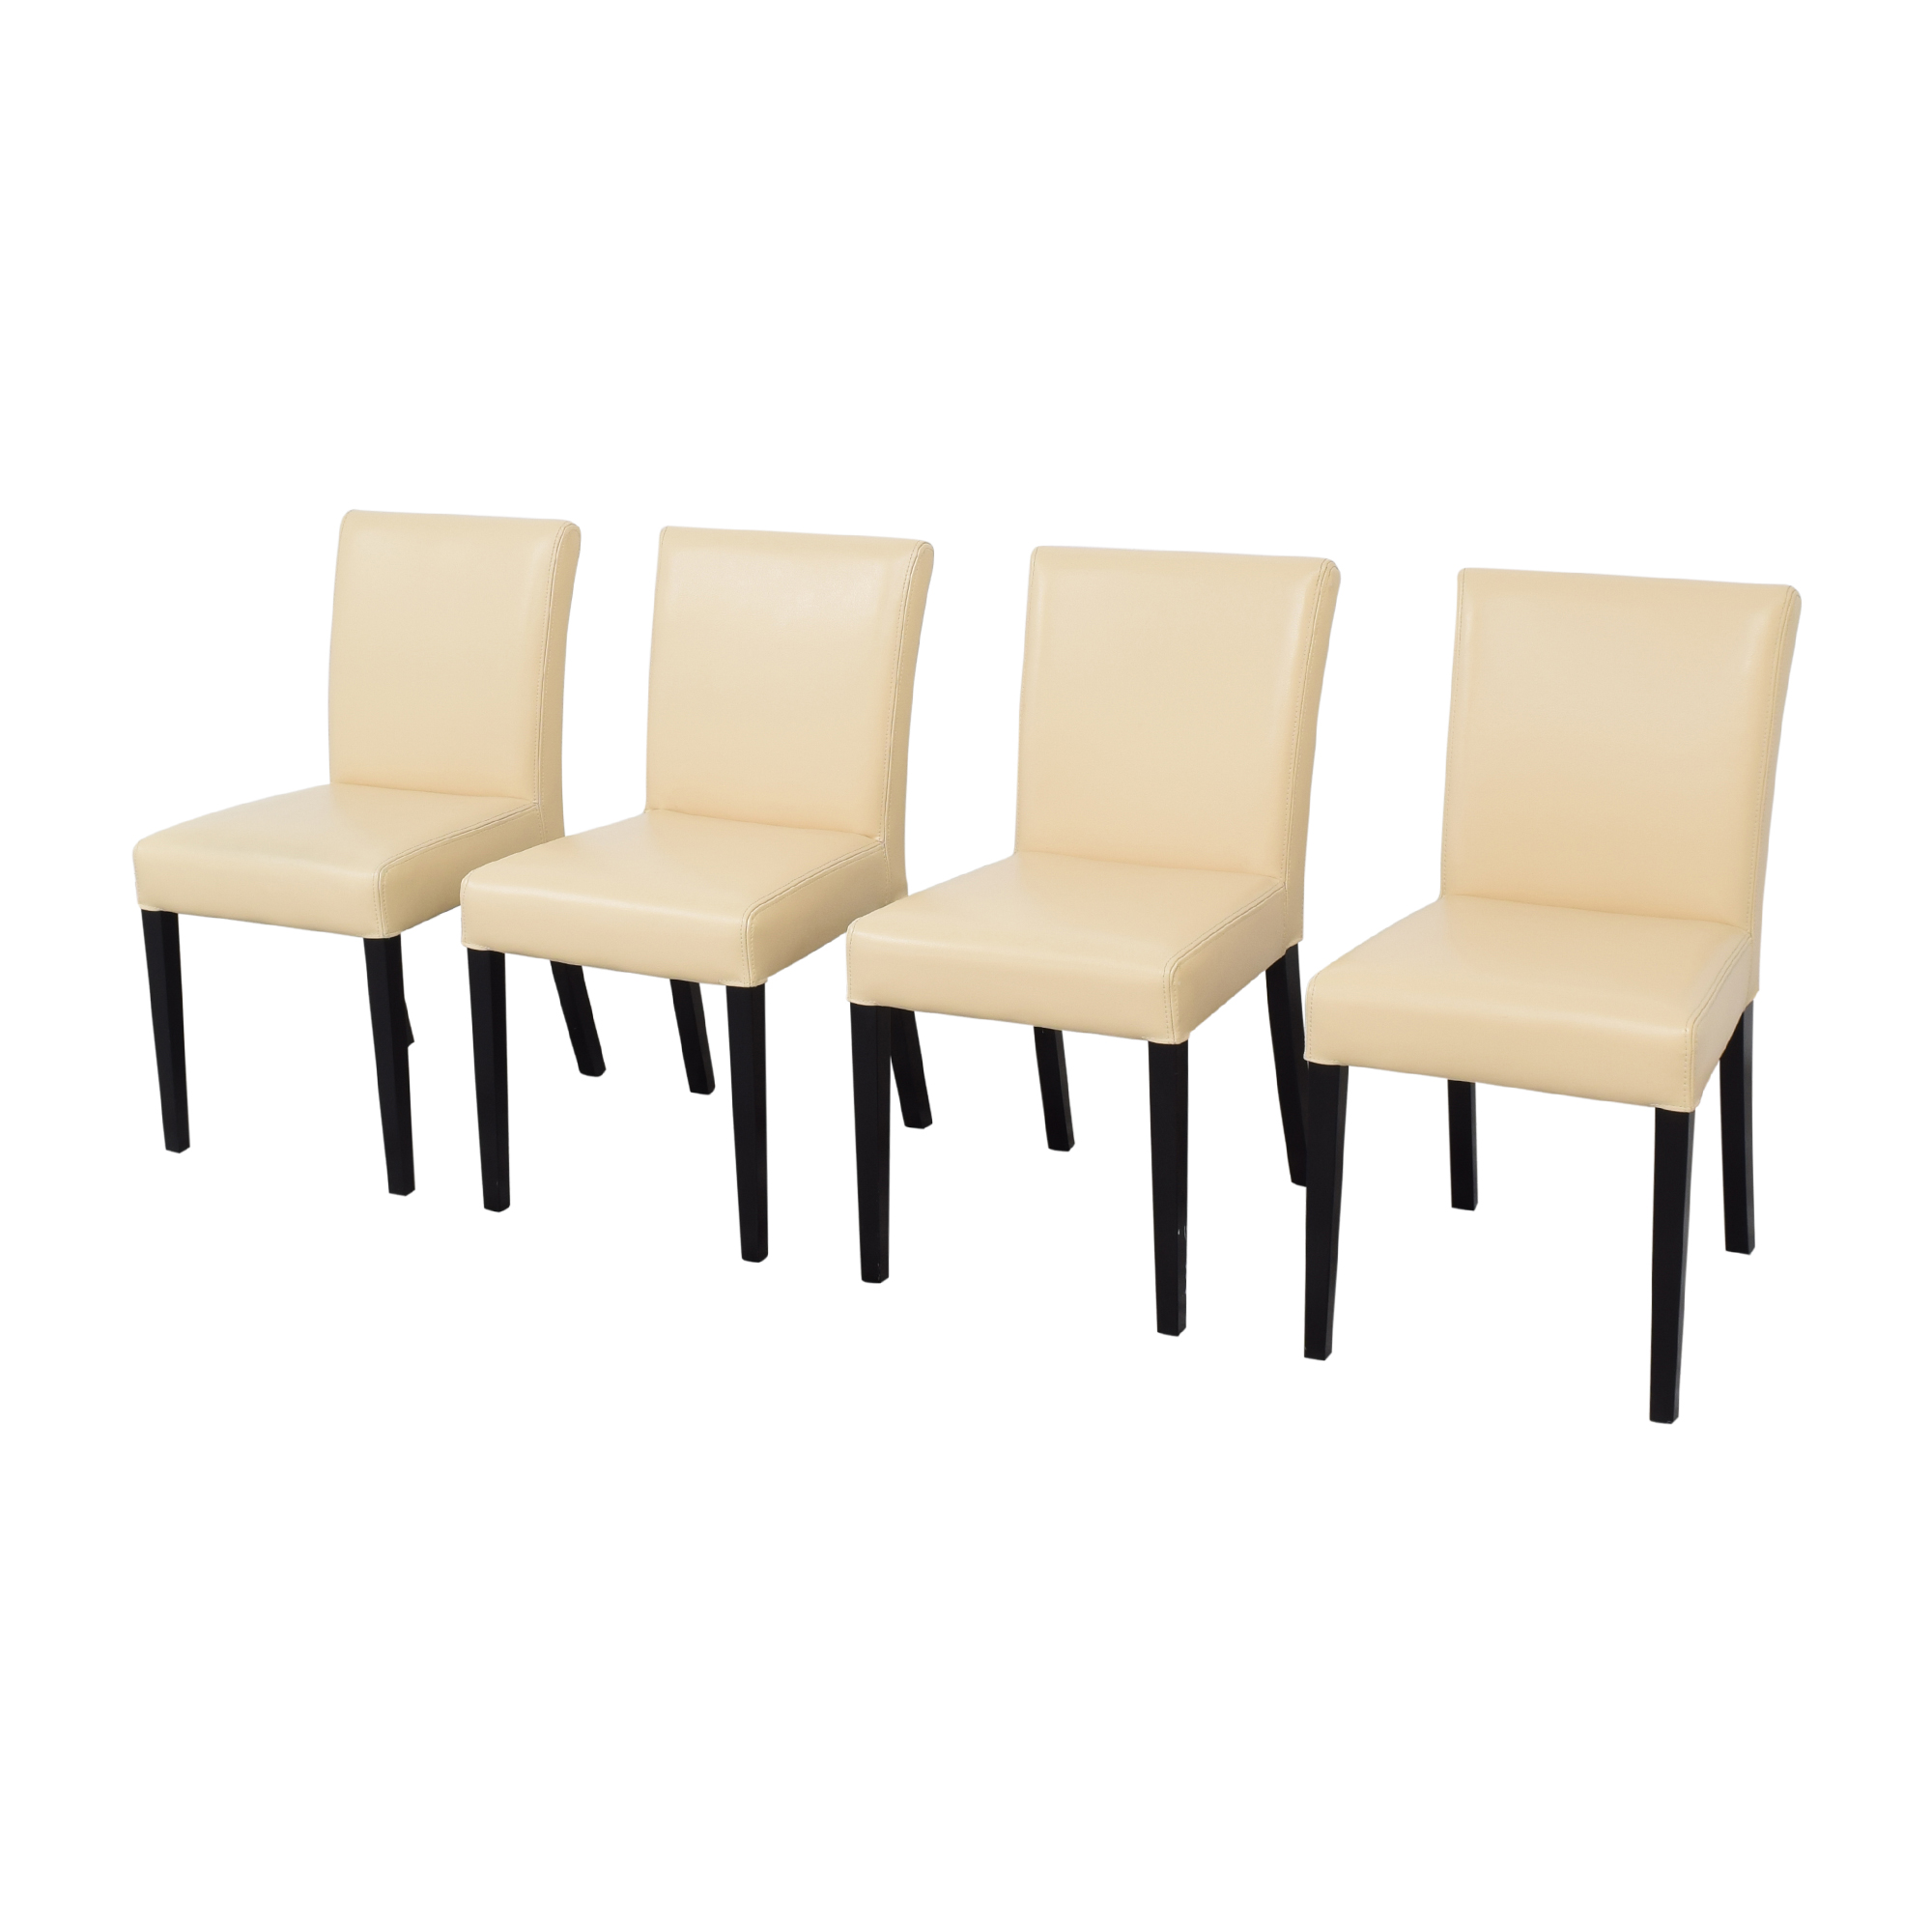 buy Crate & Barrel Crate & Barrel Lowe Ivory Dining Chairs online